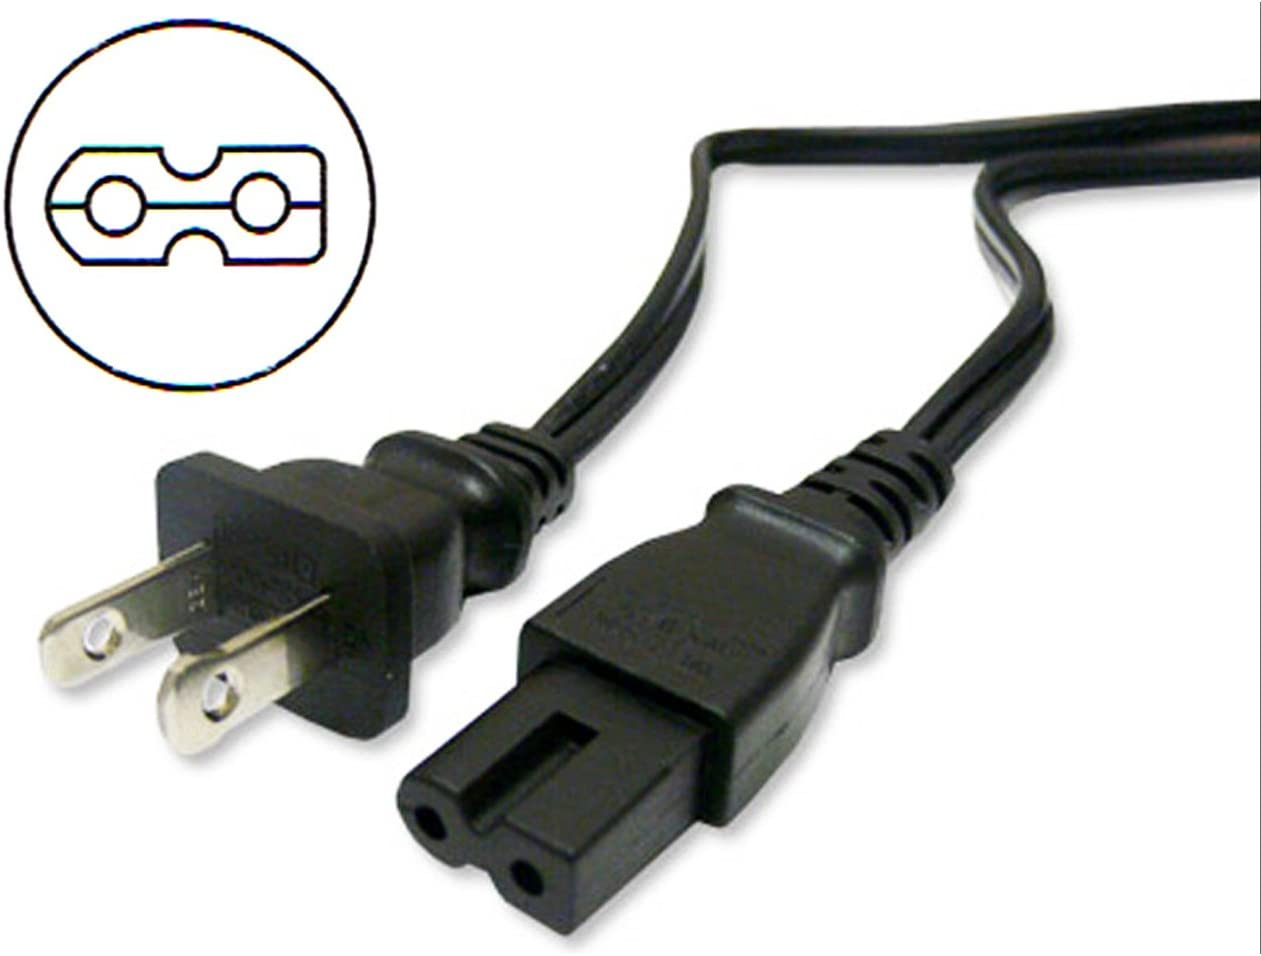 Memorex MP3851 Portable CD Boombox POWER CORD CABLE 6 FT.